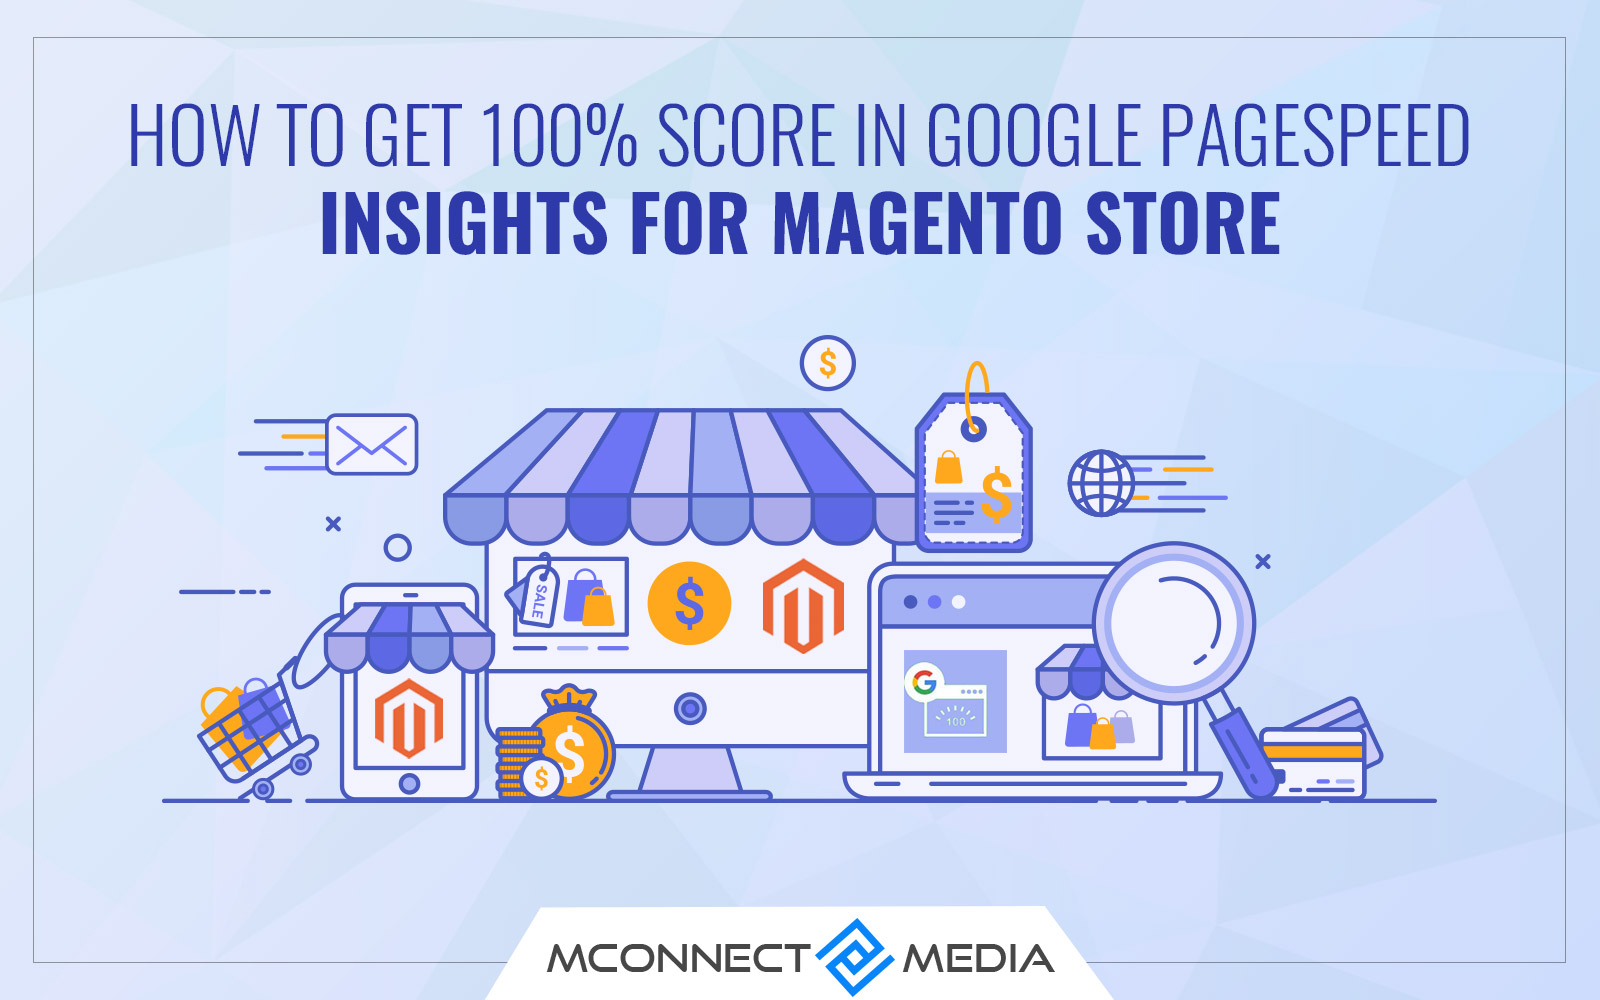 Google PageSpeed Insights for Magento Store